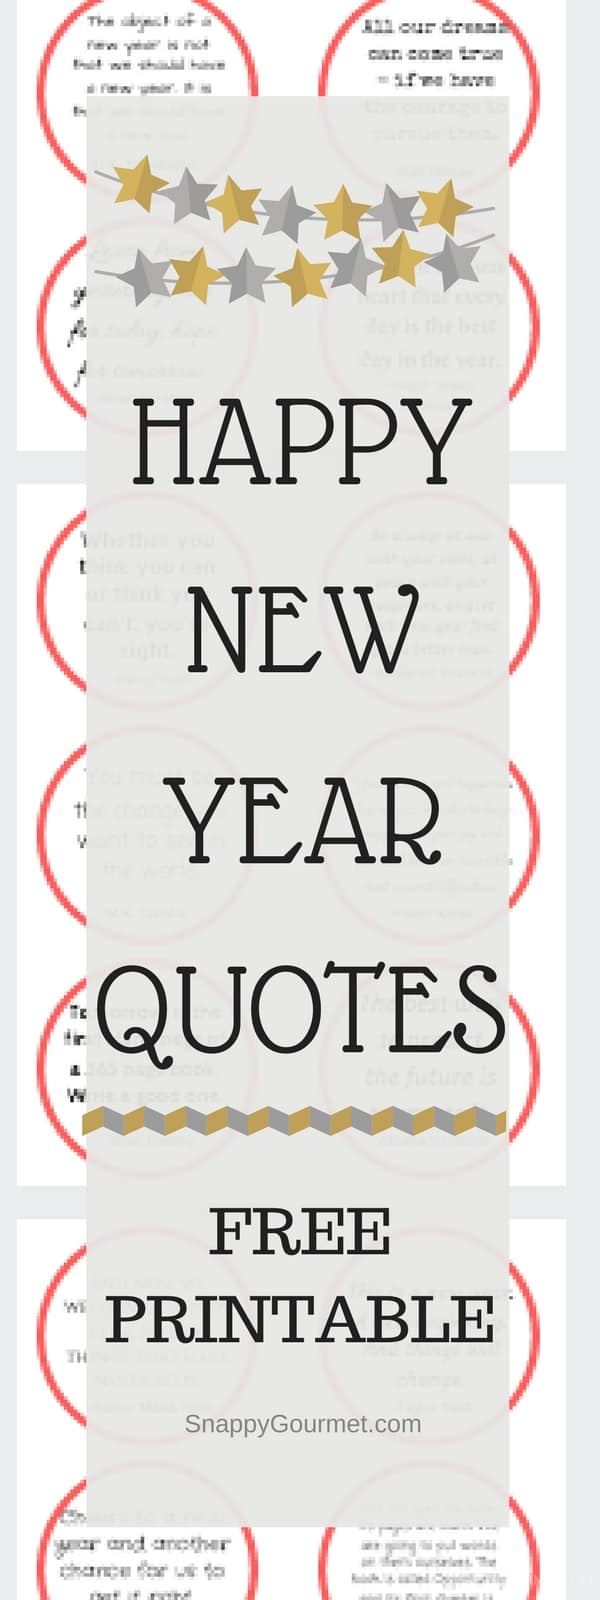 Happy New Year Quotes Free Quotes Printable Snappy Gourmet